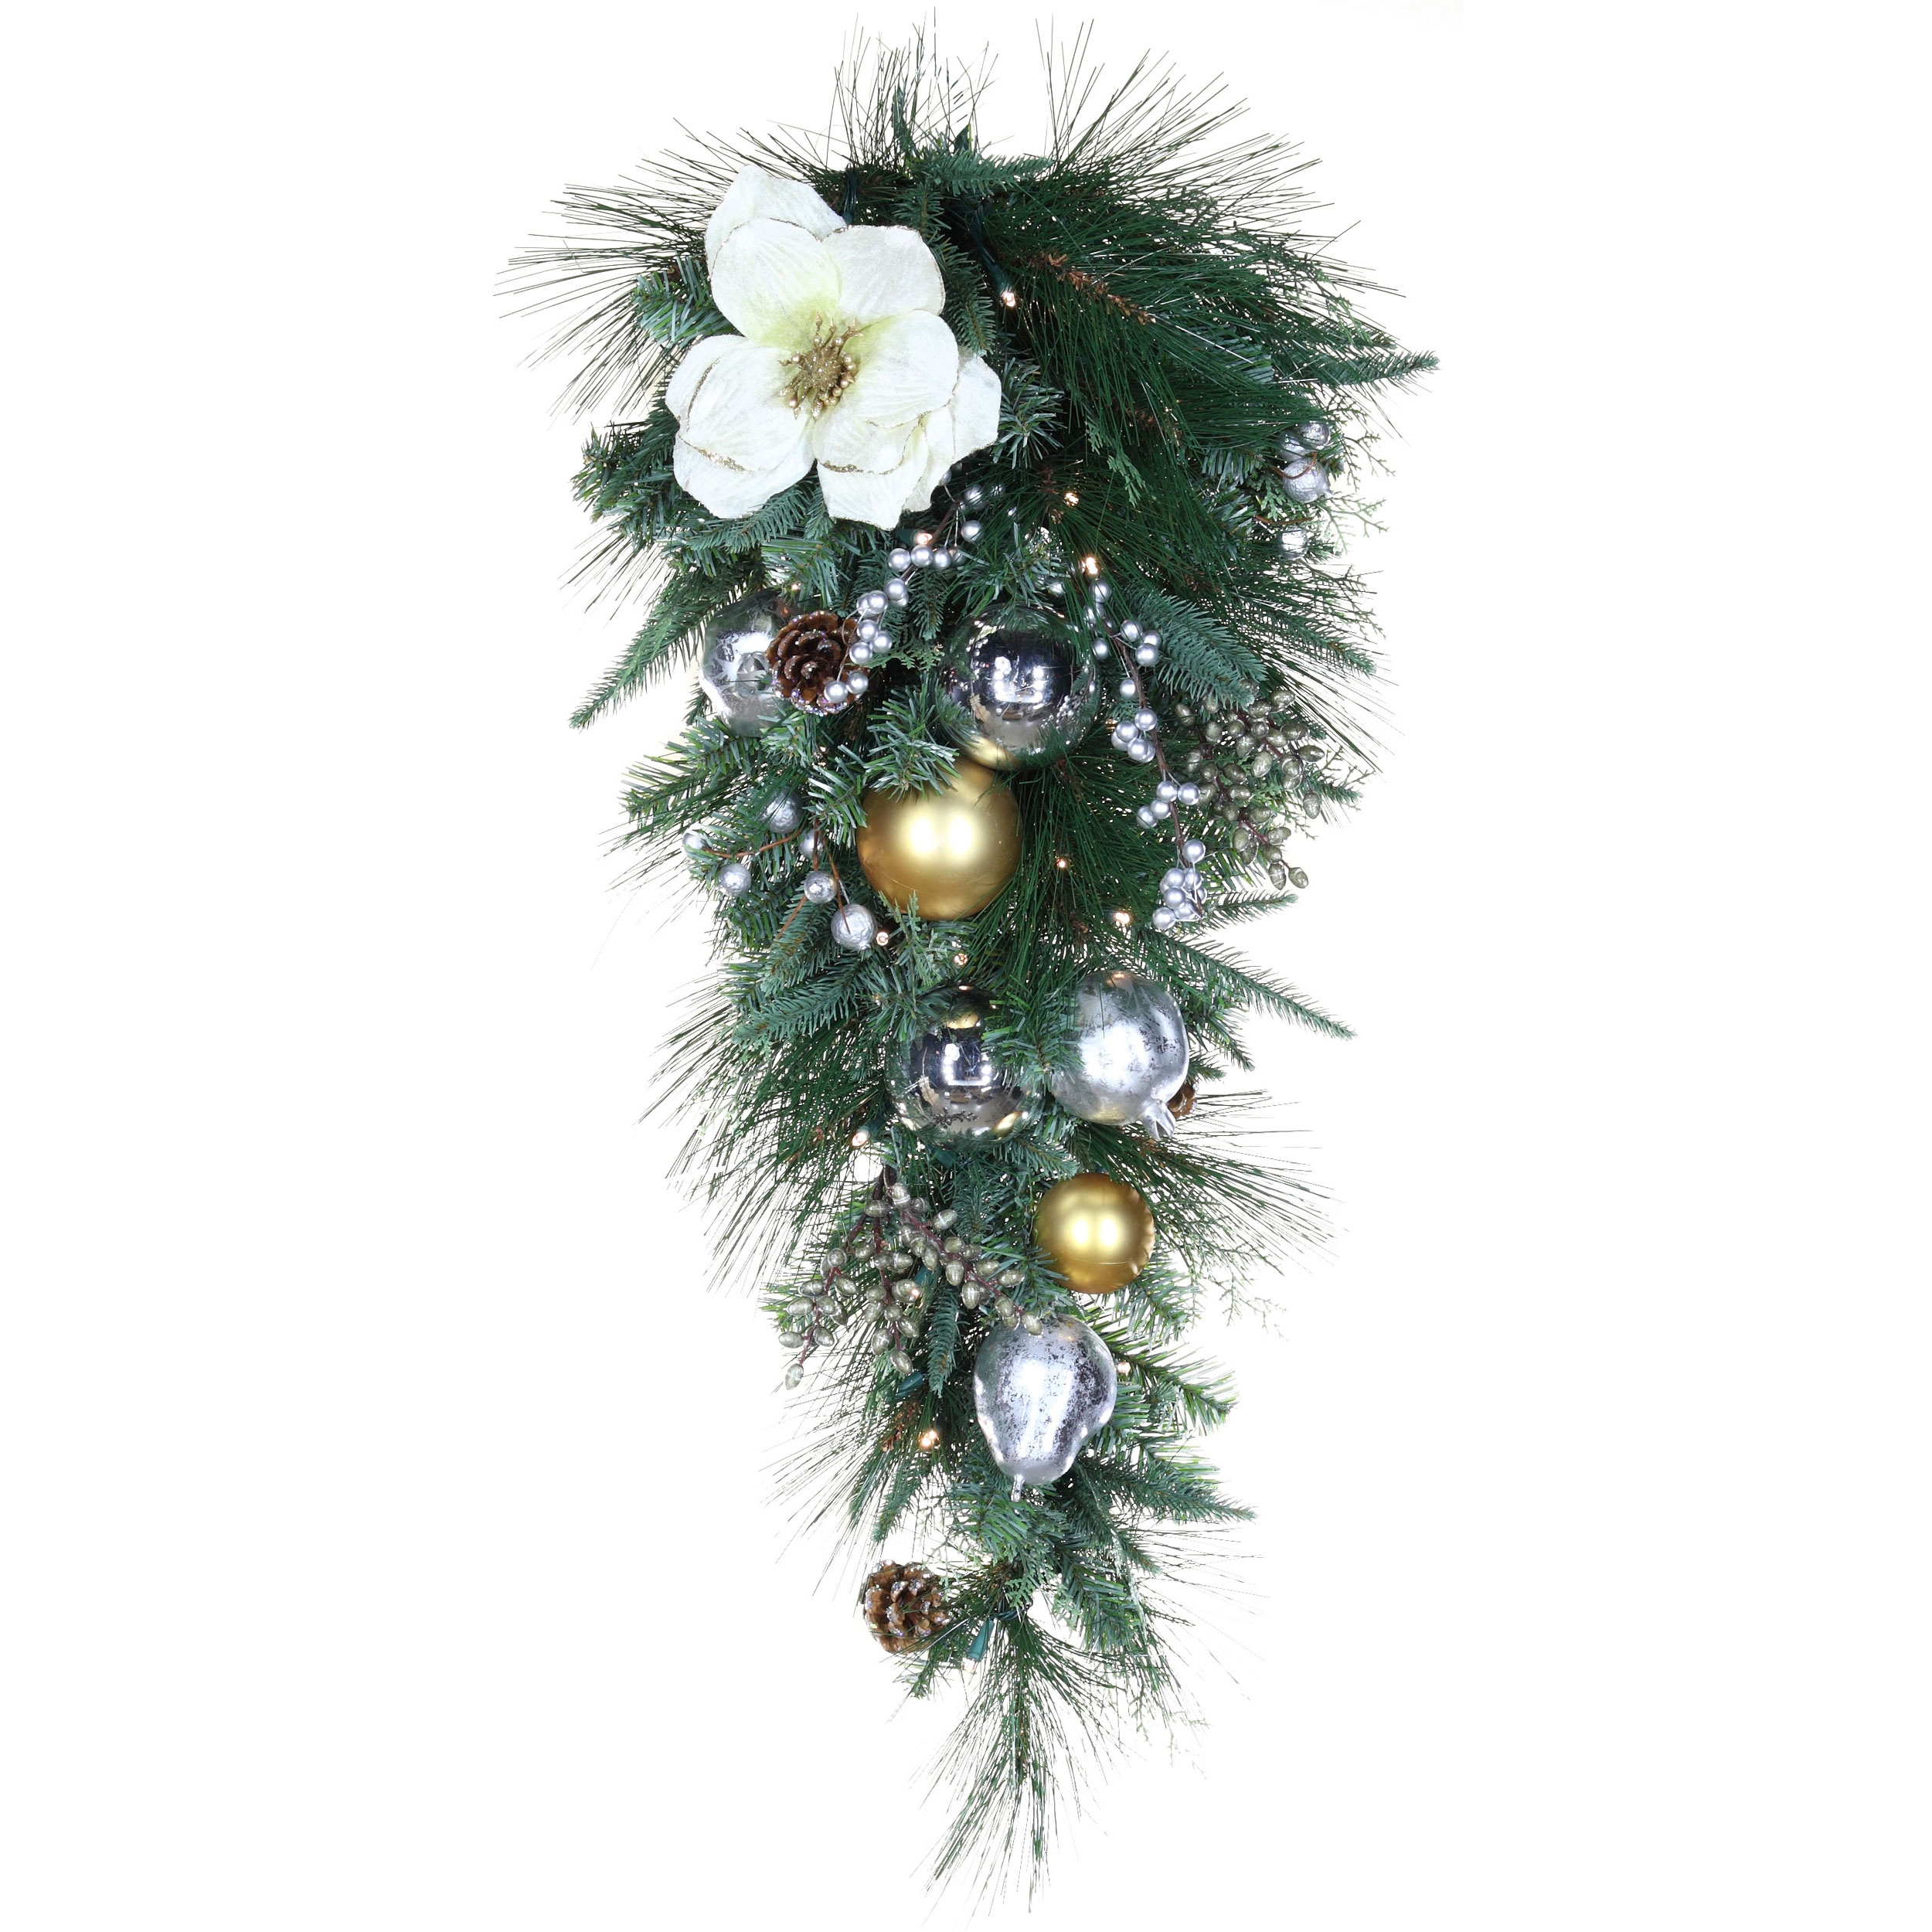 Decorative Christmas Teardrop Wreaths